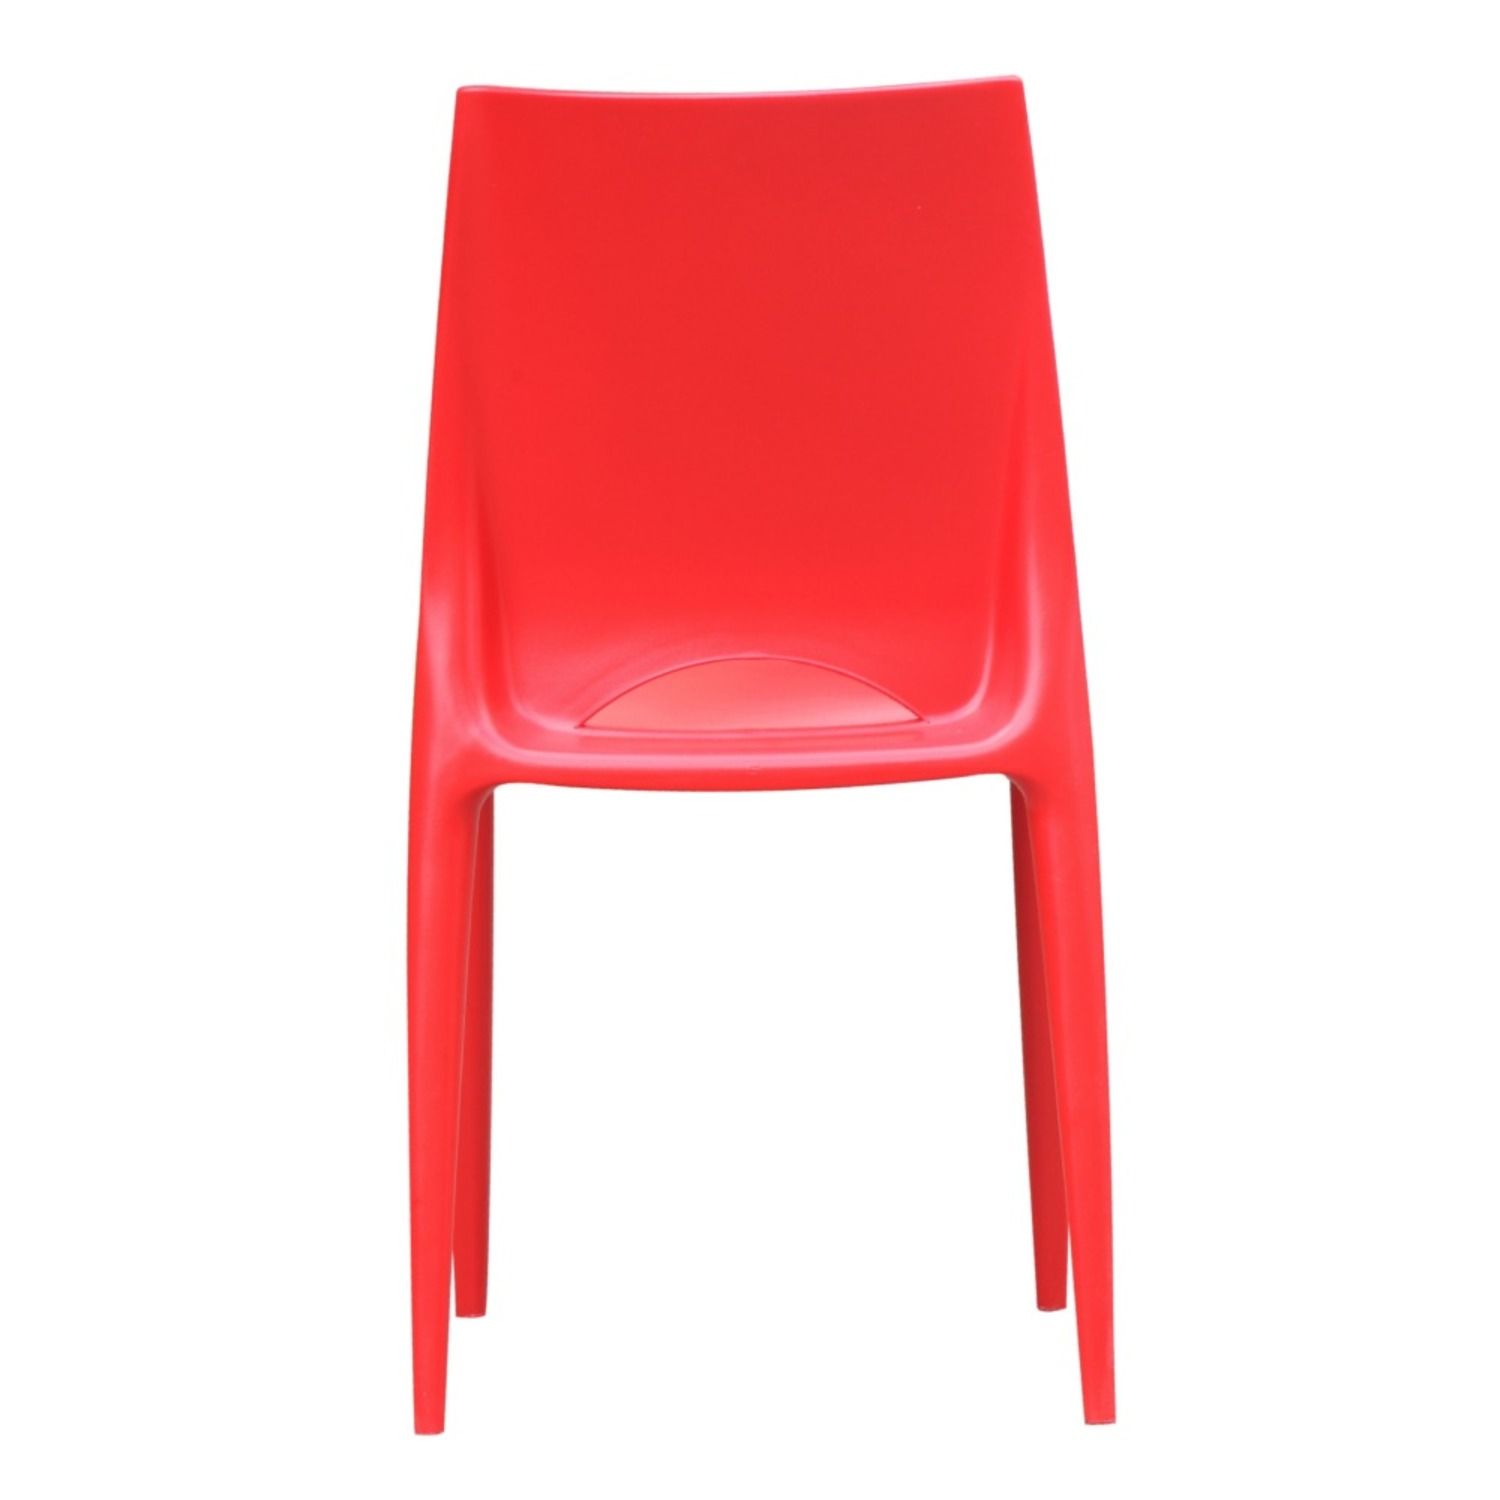 Dining Chair In Square-Shaped Red Finish - image-2